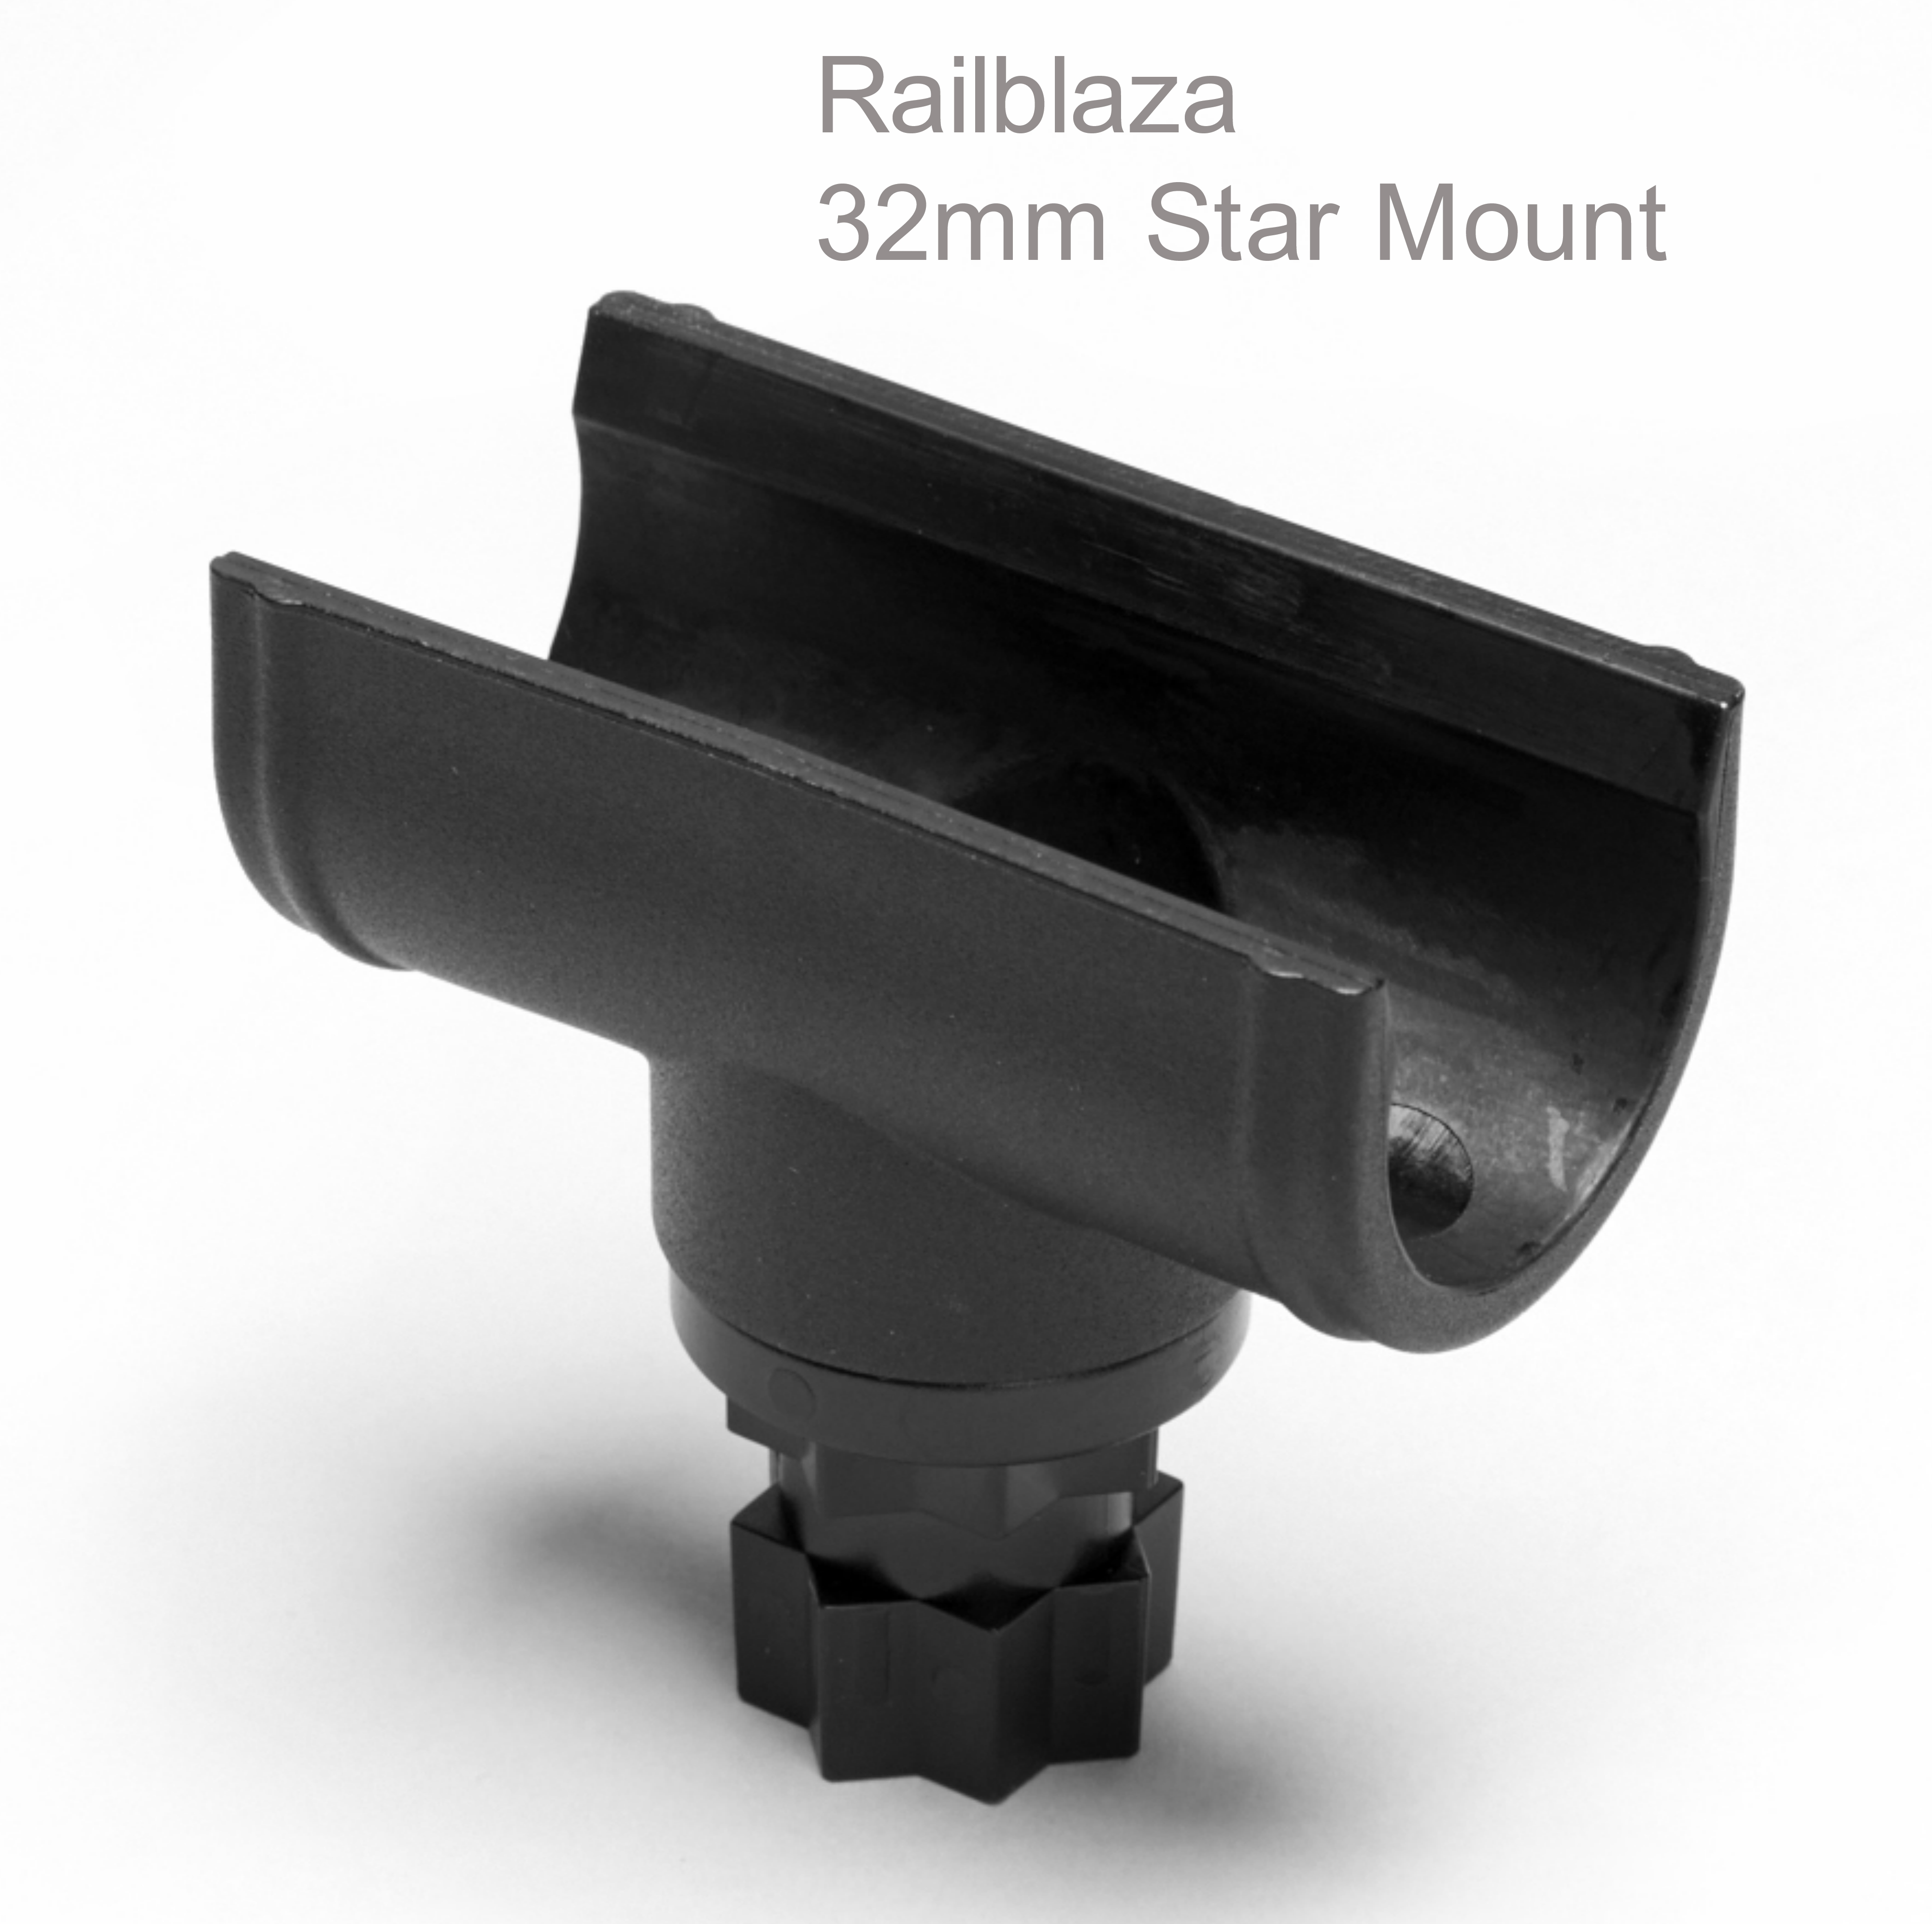 Railblaza QuickGrip Paddle Clip 32mm Star Mount|Store|For Kayak & SUP Paddles